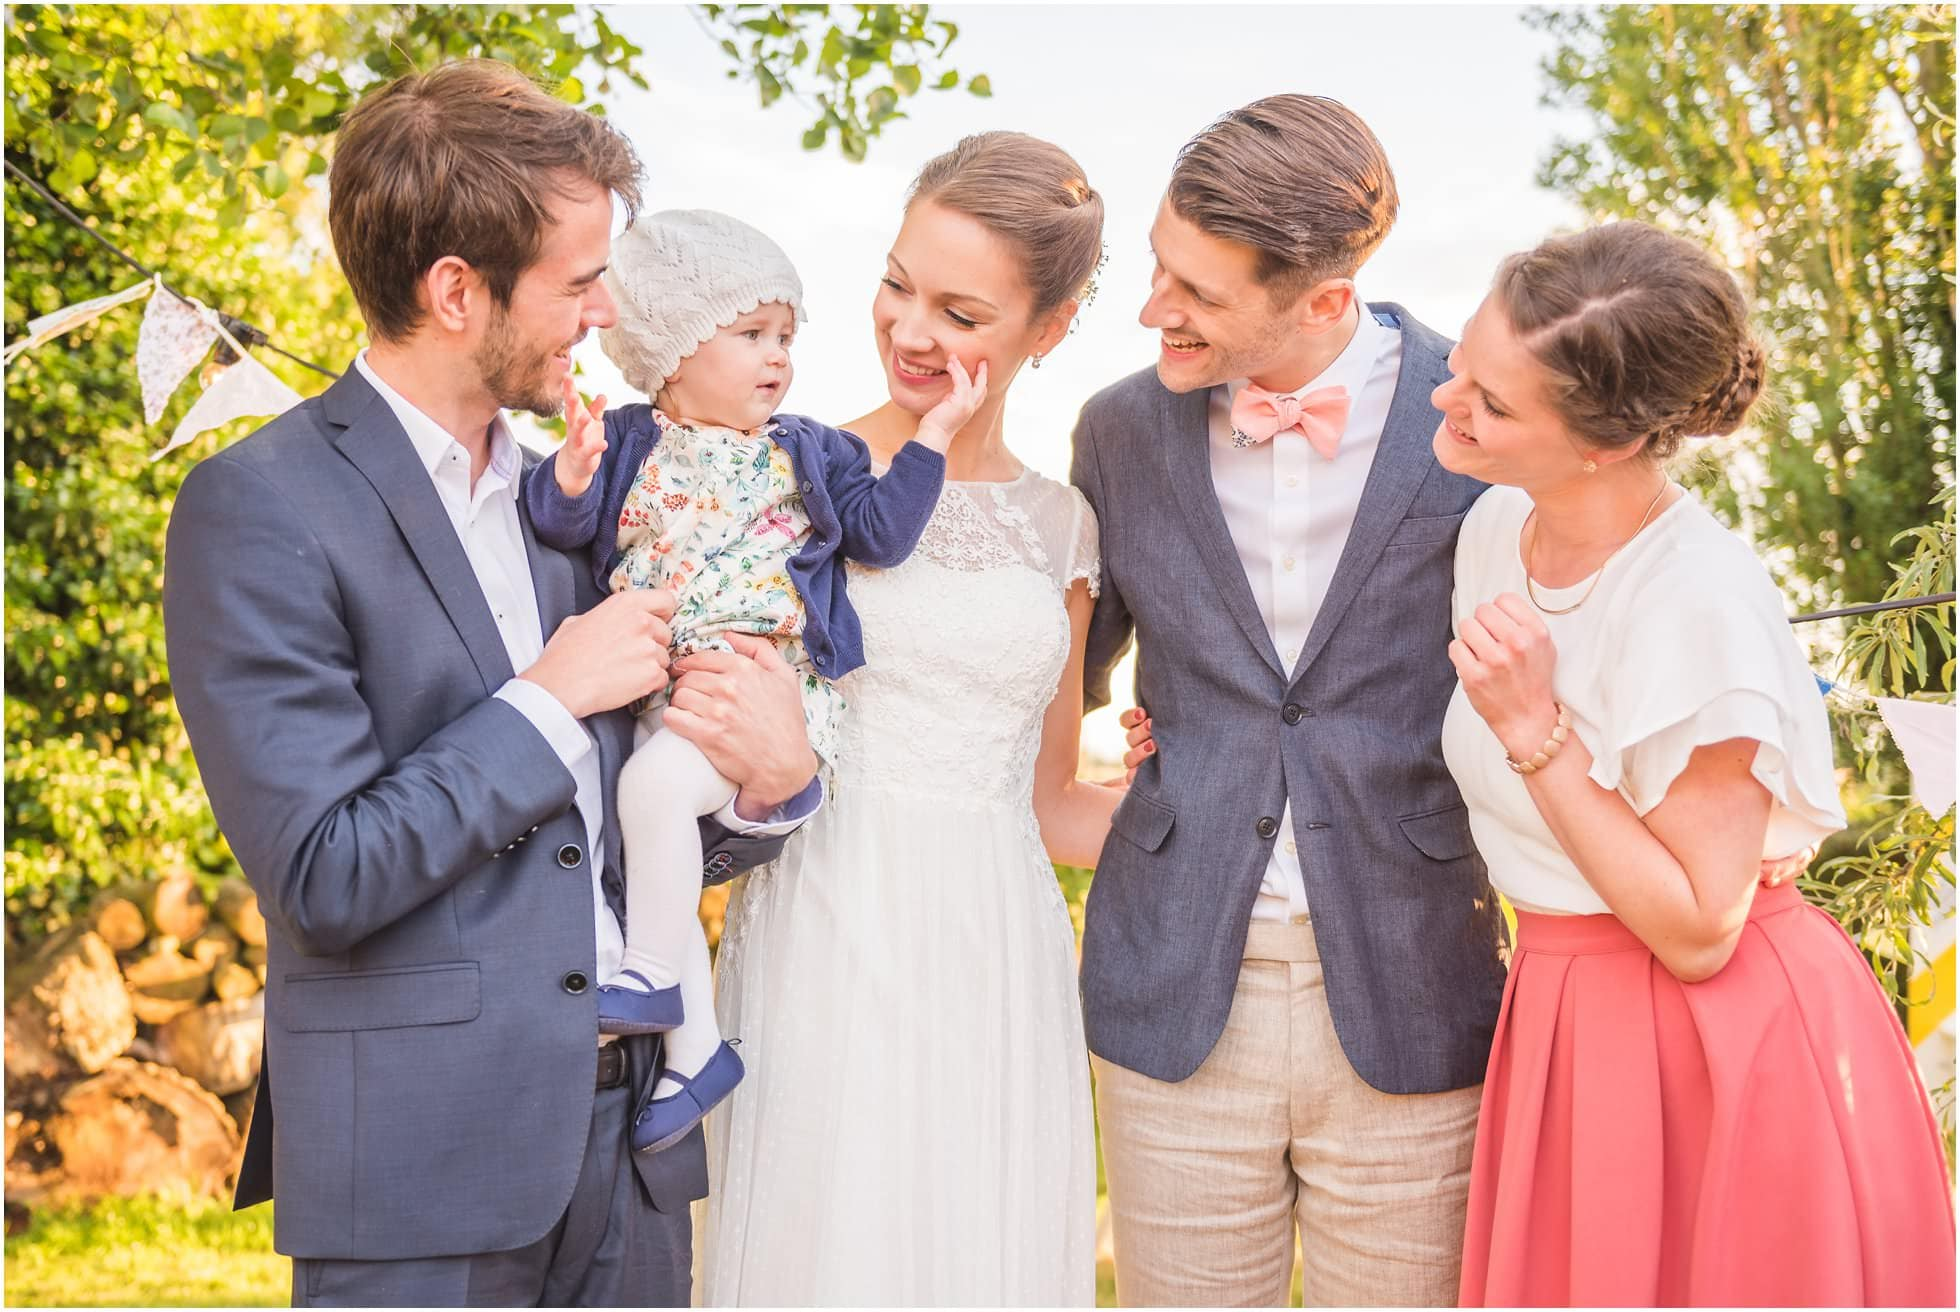 Relaxed and informal wedding photography group shot